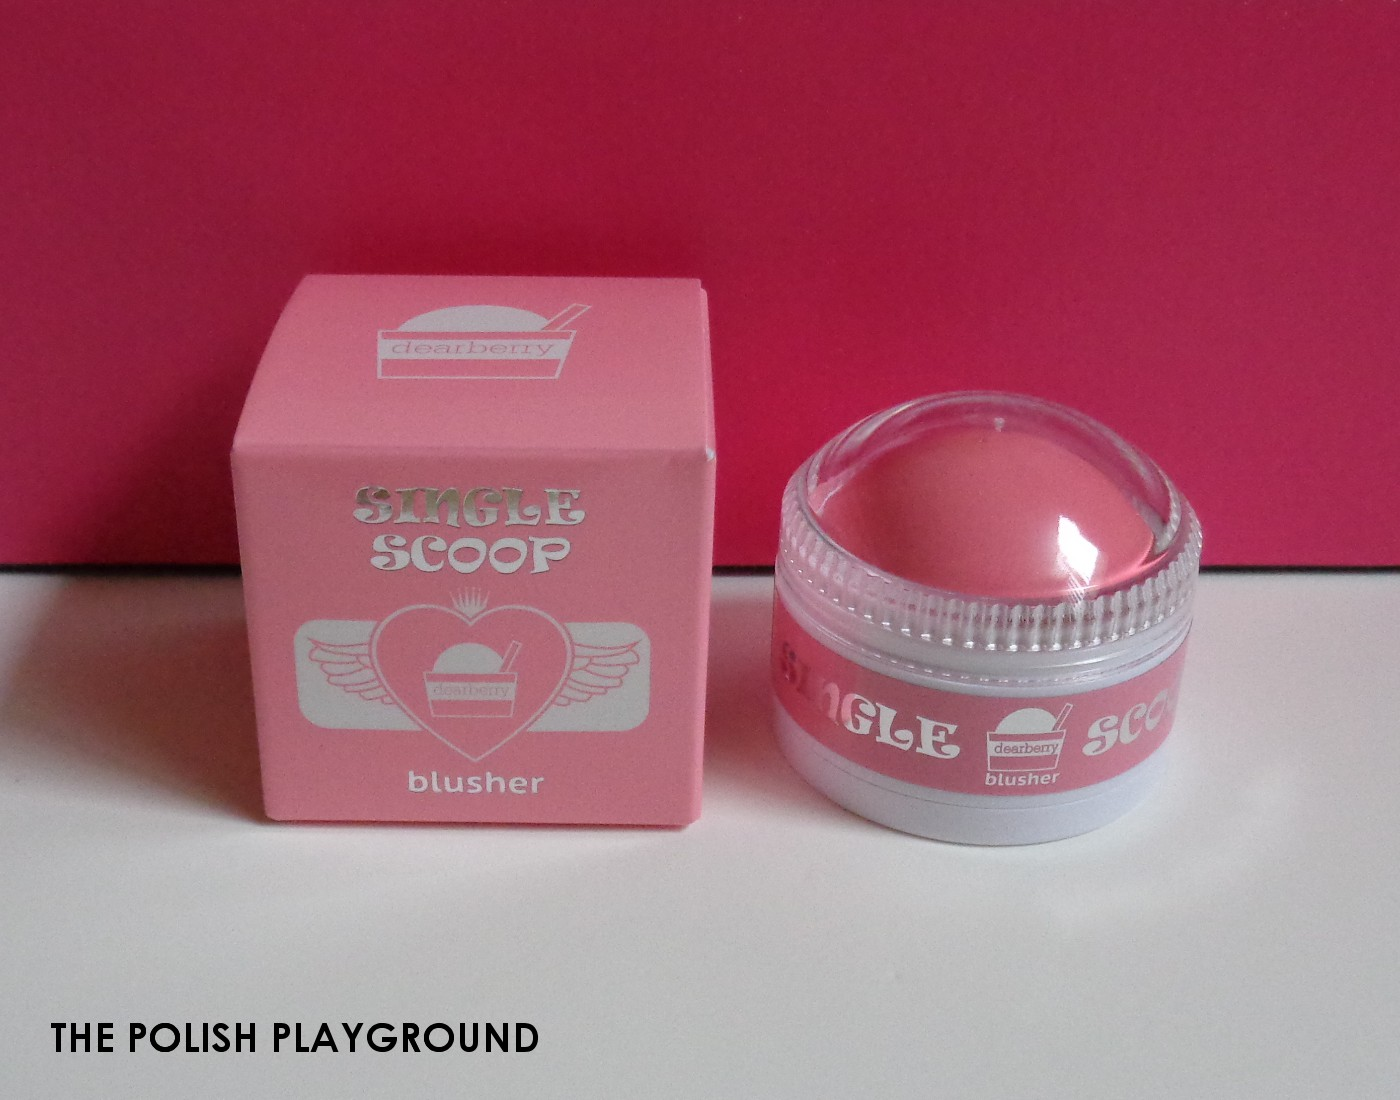 Memebox Special #47 My Dessert Box Unboxing - dearberry Single Scoop Blusher in 01 Chiffon Pink